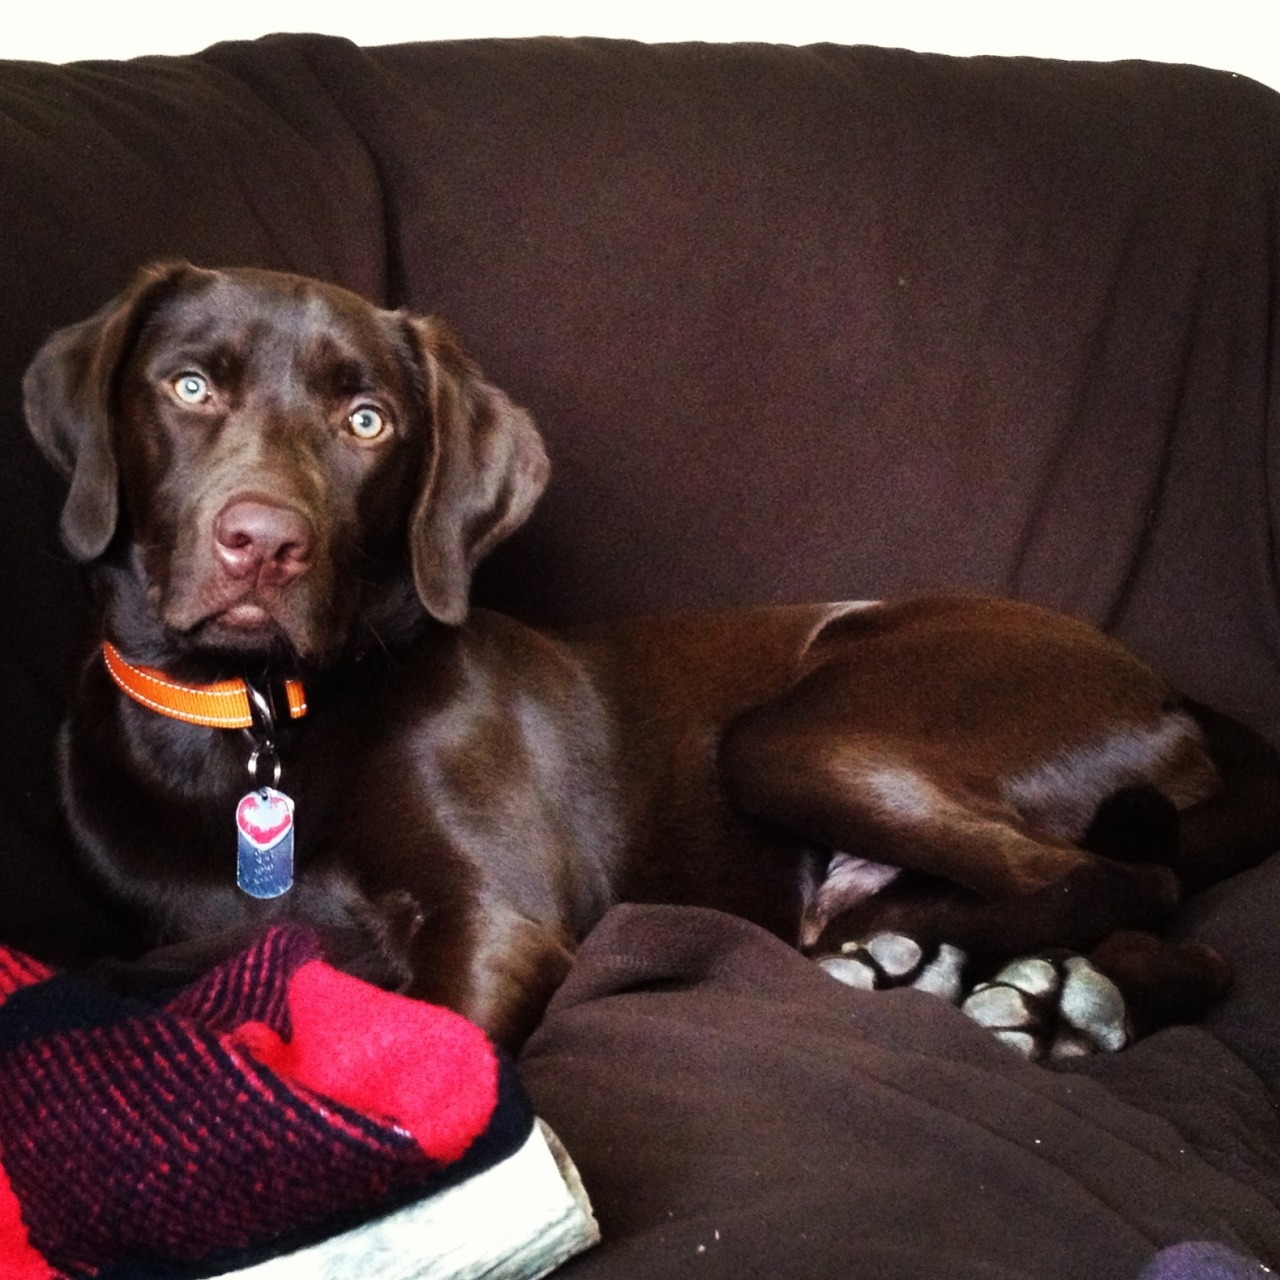 handsomedogs:  This is my Dog Chex! He's a pure chocolate lab and the love of my life :)